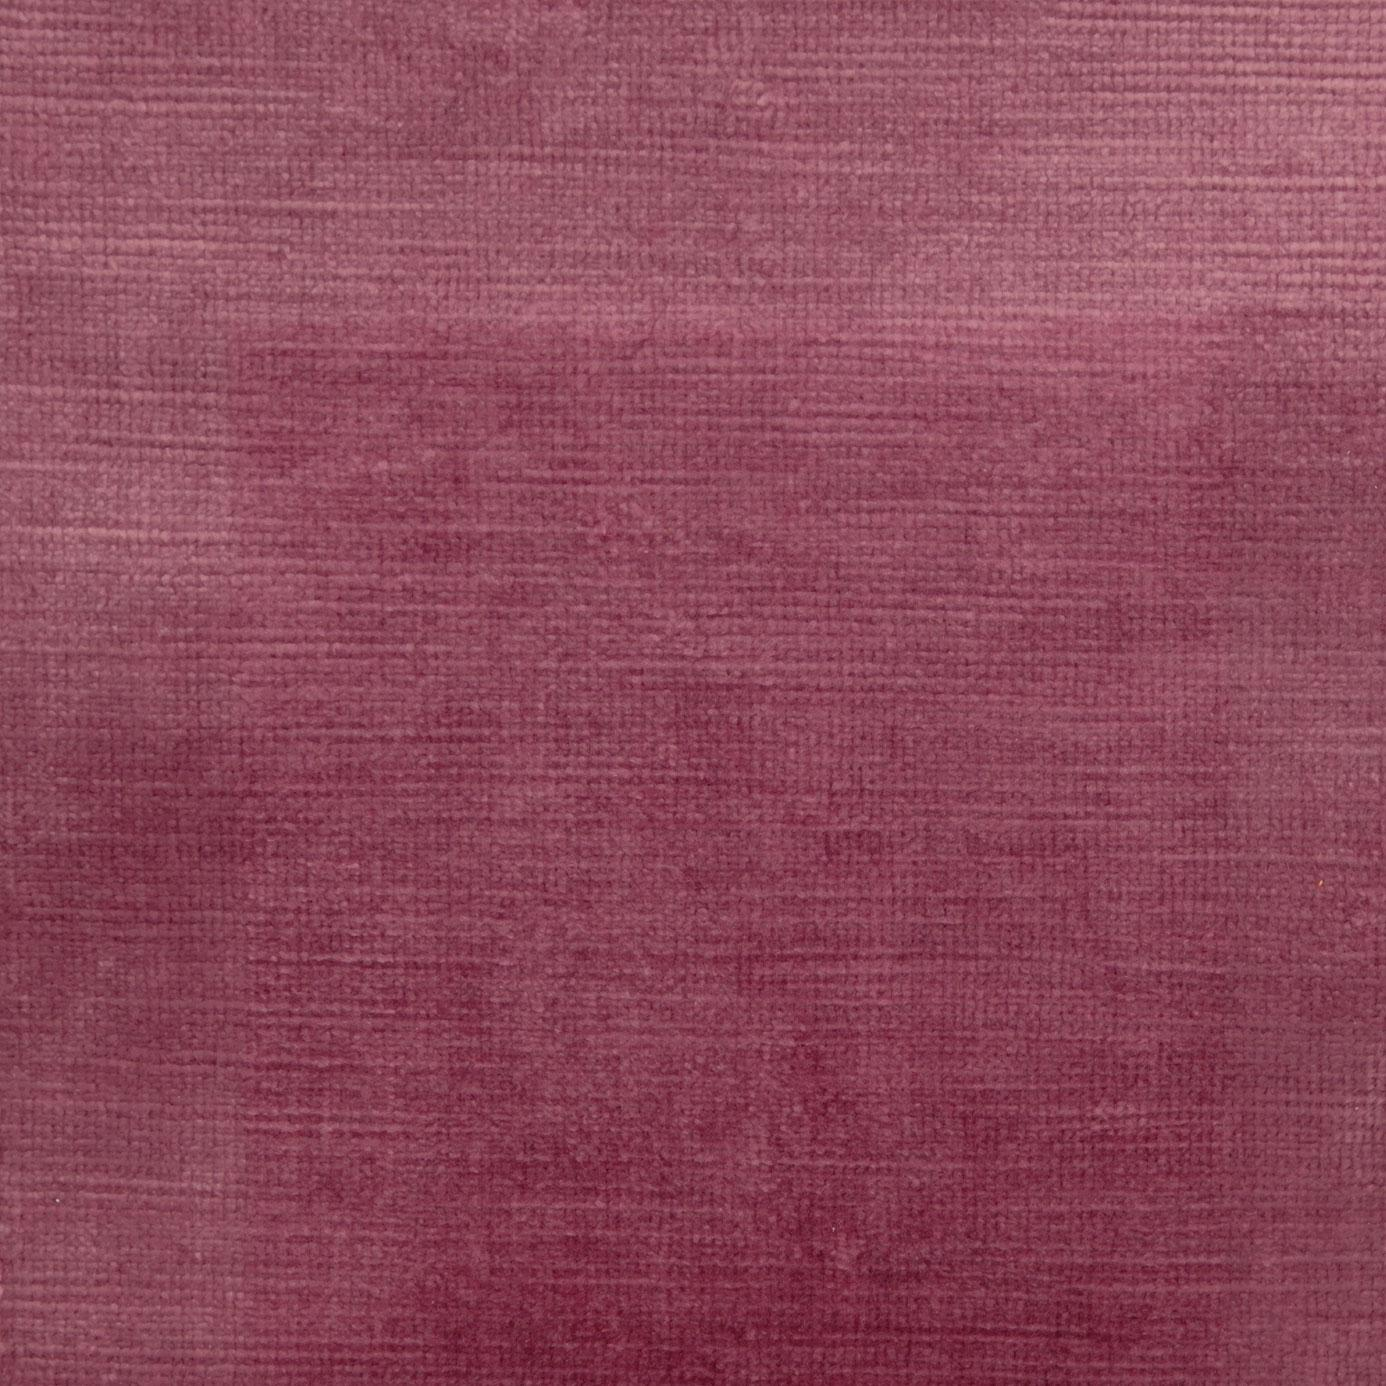 Majestic velvets fabric rose f0128 55 clarke for Decor 55 fabric